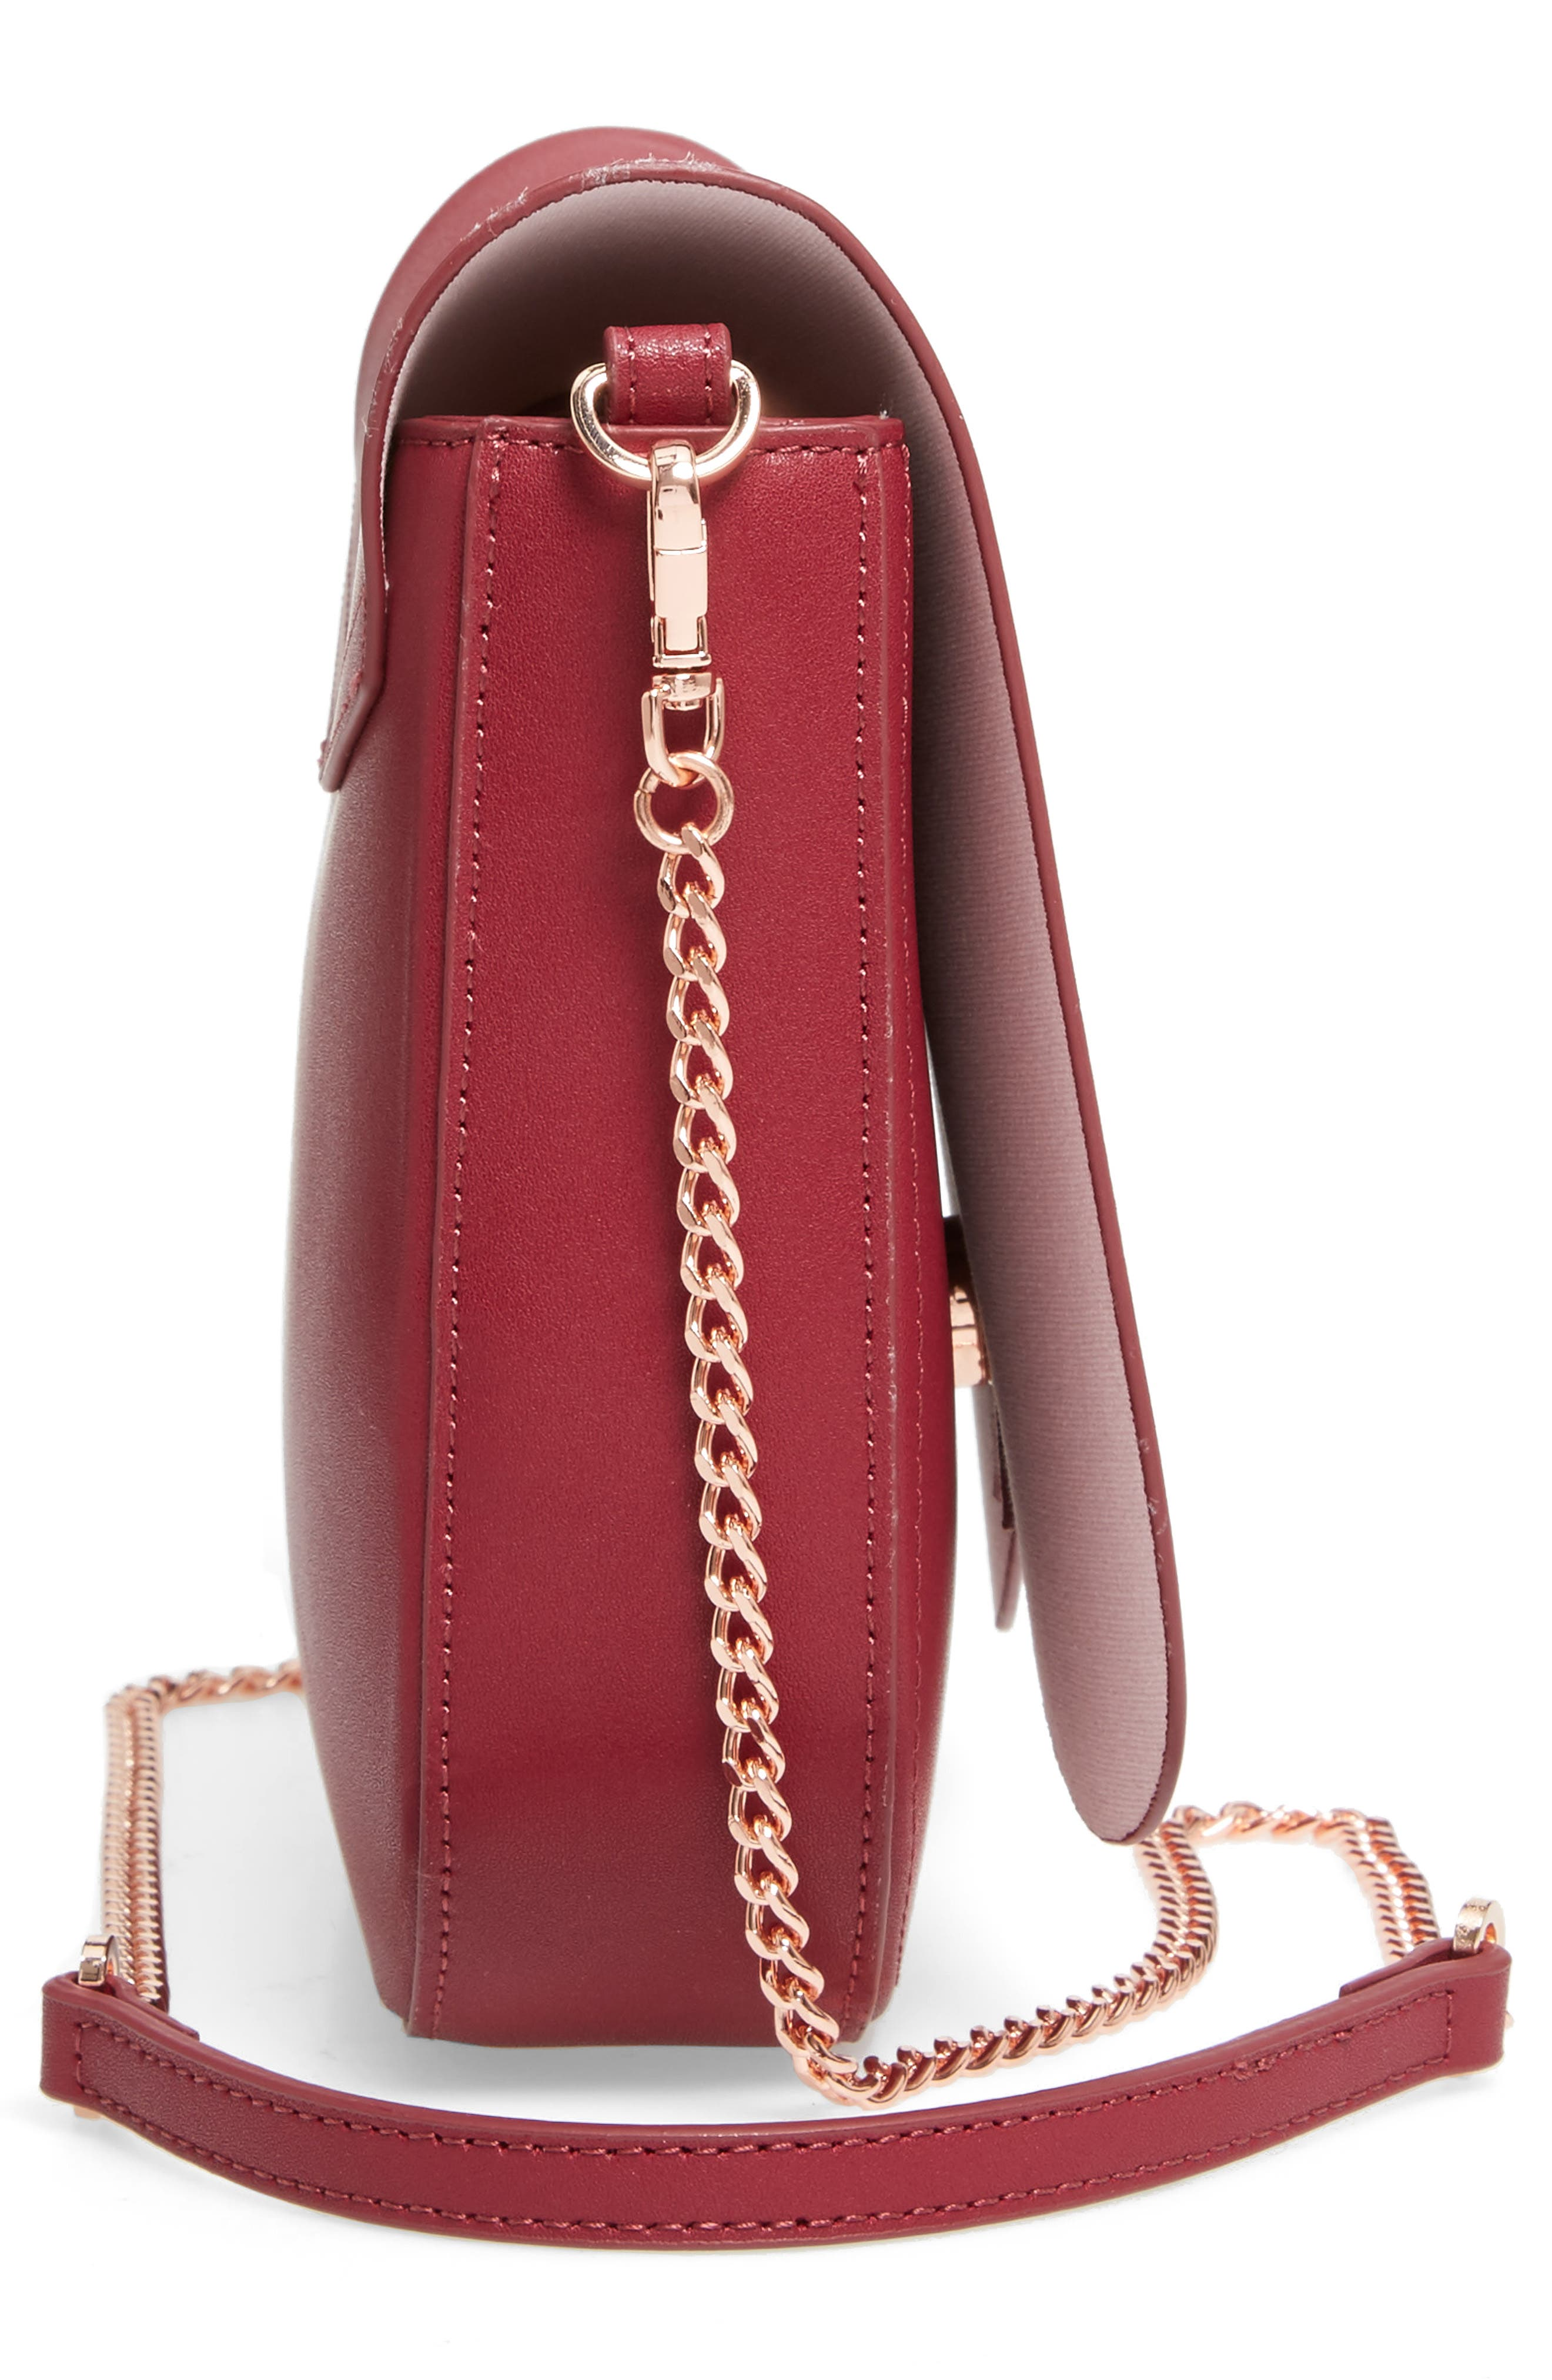 Kittii Cat Leather Crossbody Bag,                             Alternate thumbnail 5, color,                             Oxblood